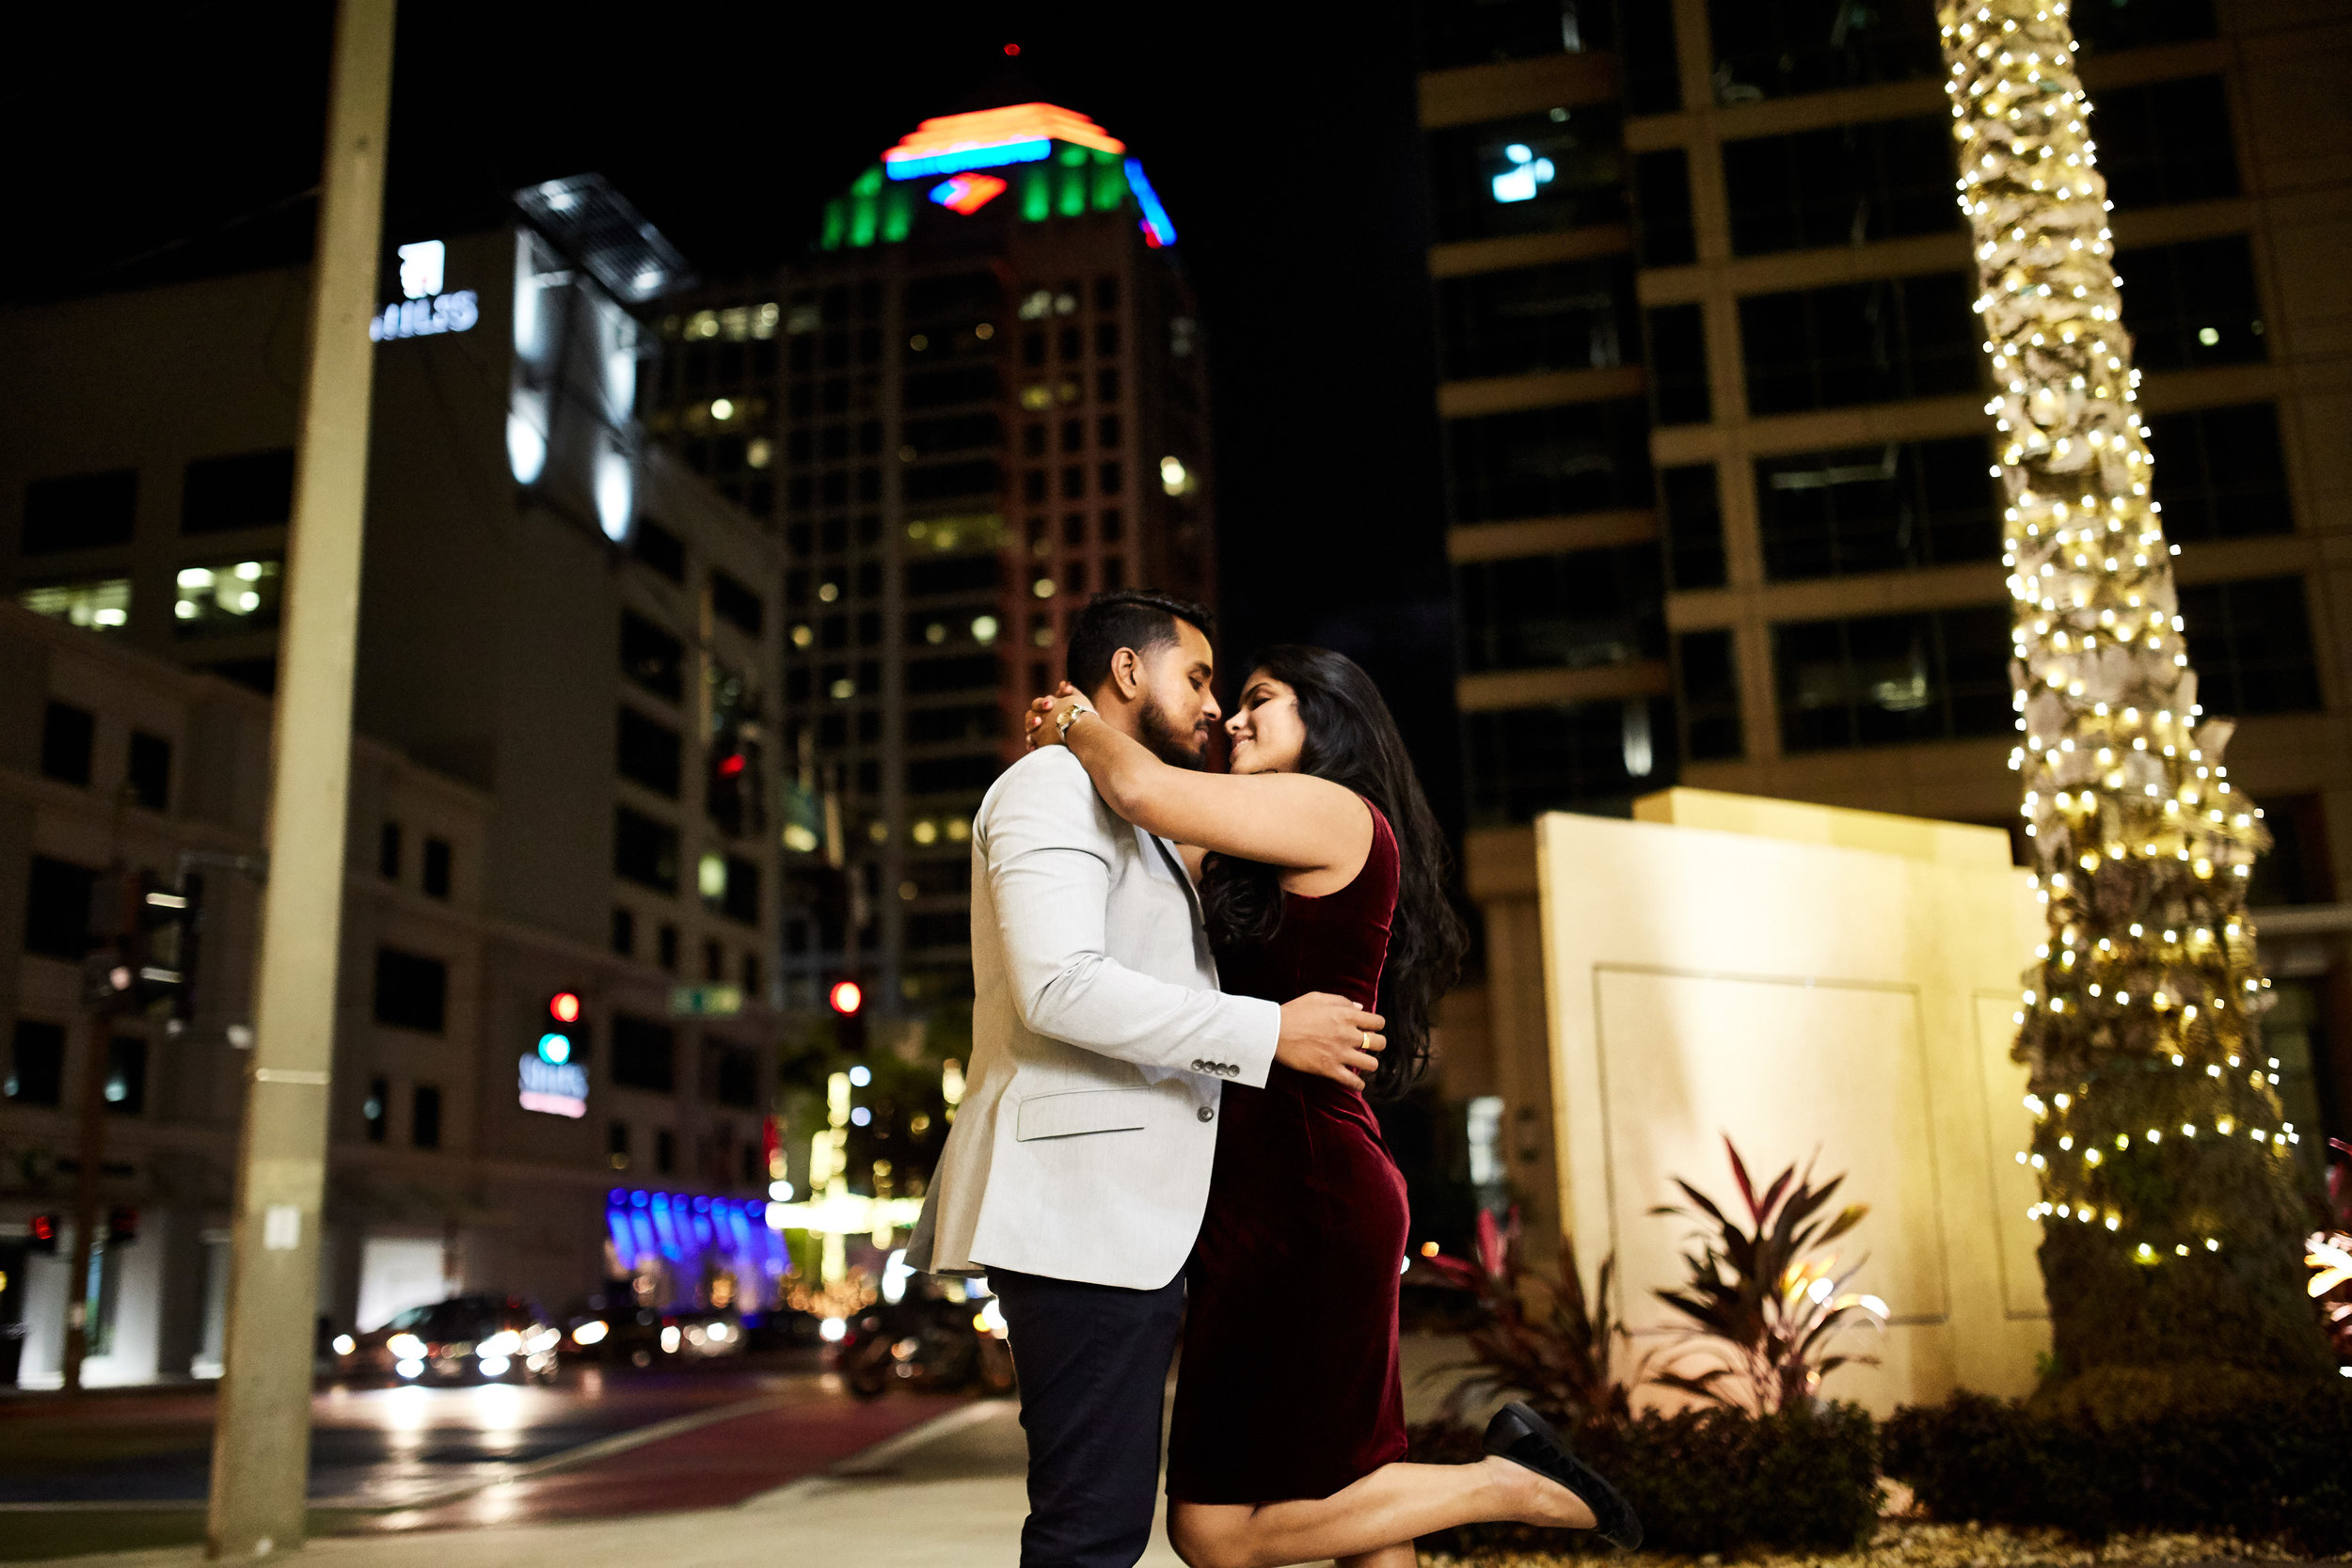 Engagement Photoshoot image at Las Olas in Downtown Fort Lauderdale. Image by photographerJavier Edwards of El Roi Photo - based in Miami, Fl